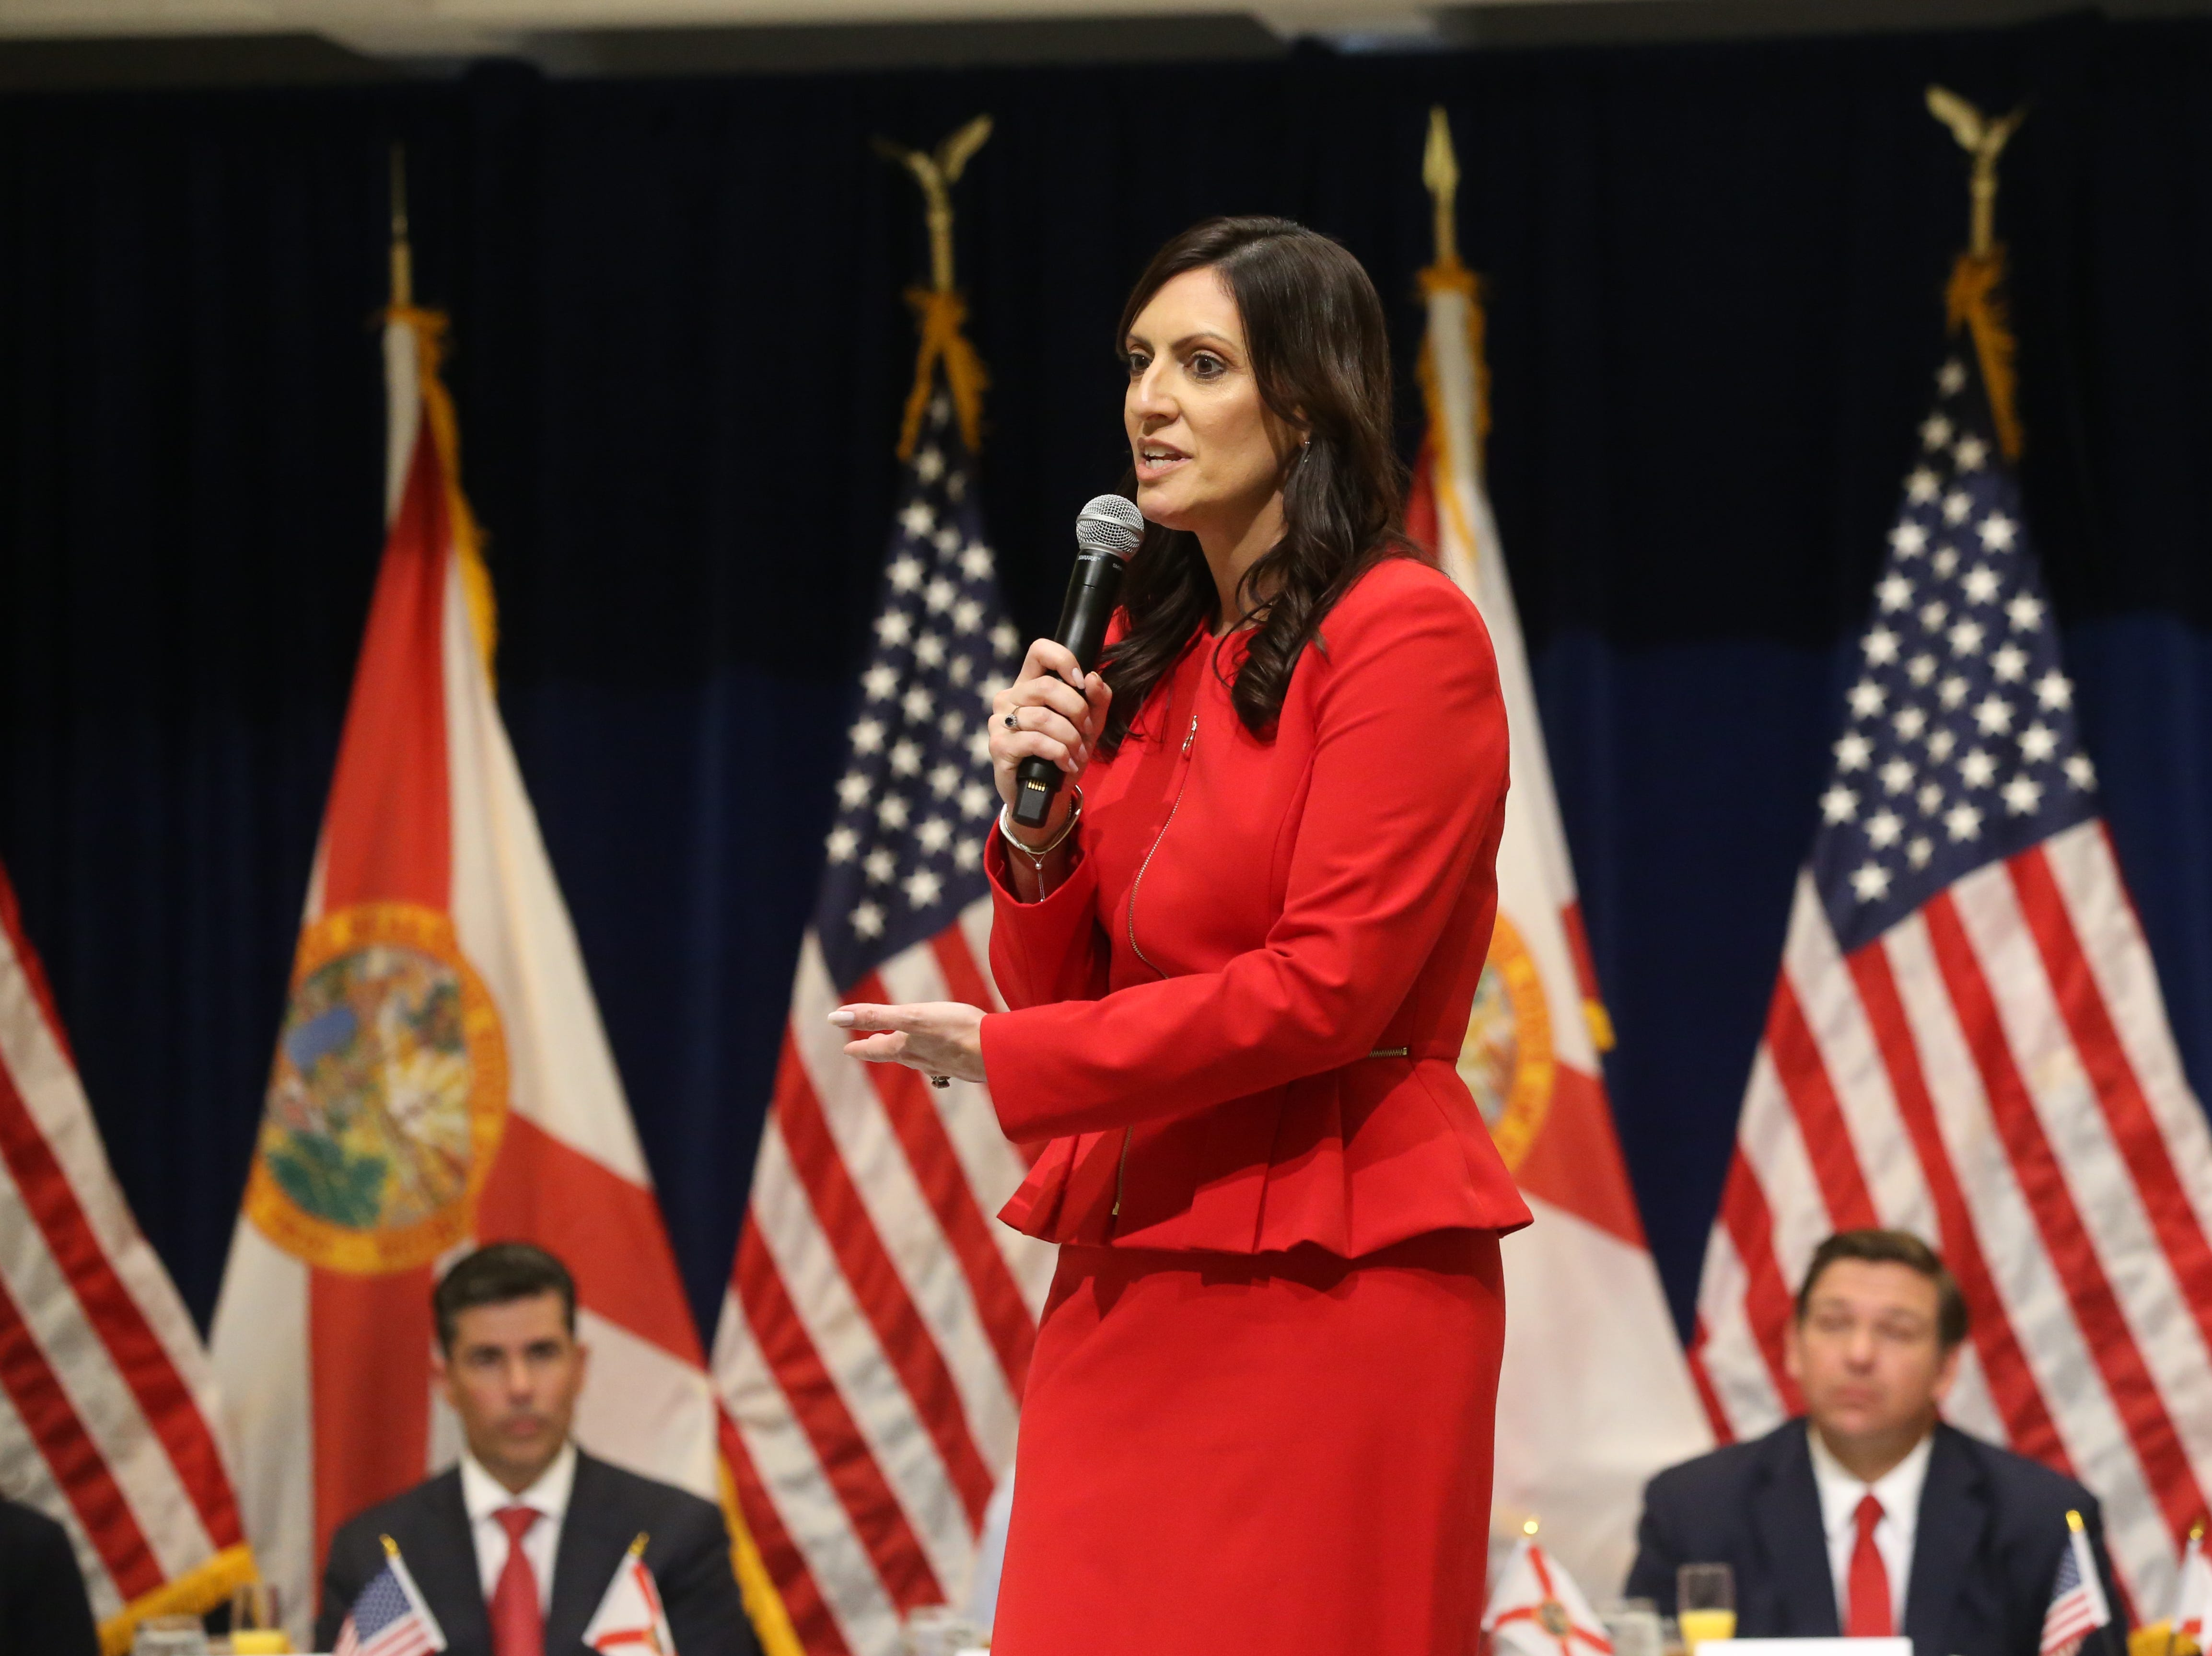 For the first time in Inaugural history, Gov. Ron DeSantis addresses FloridaÕs Legislative leaders and Cabinet officials. DeSantis discusses his plans to work with our stateÕs elected leaders to achieve a Bold Vision for a Brighter Future, Tuesday, Jan. 8, 2019. Lt. Gov. Jeanette Nunez gives a short speech before introducing Gov. Ron DeSantis.